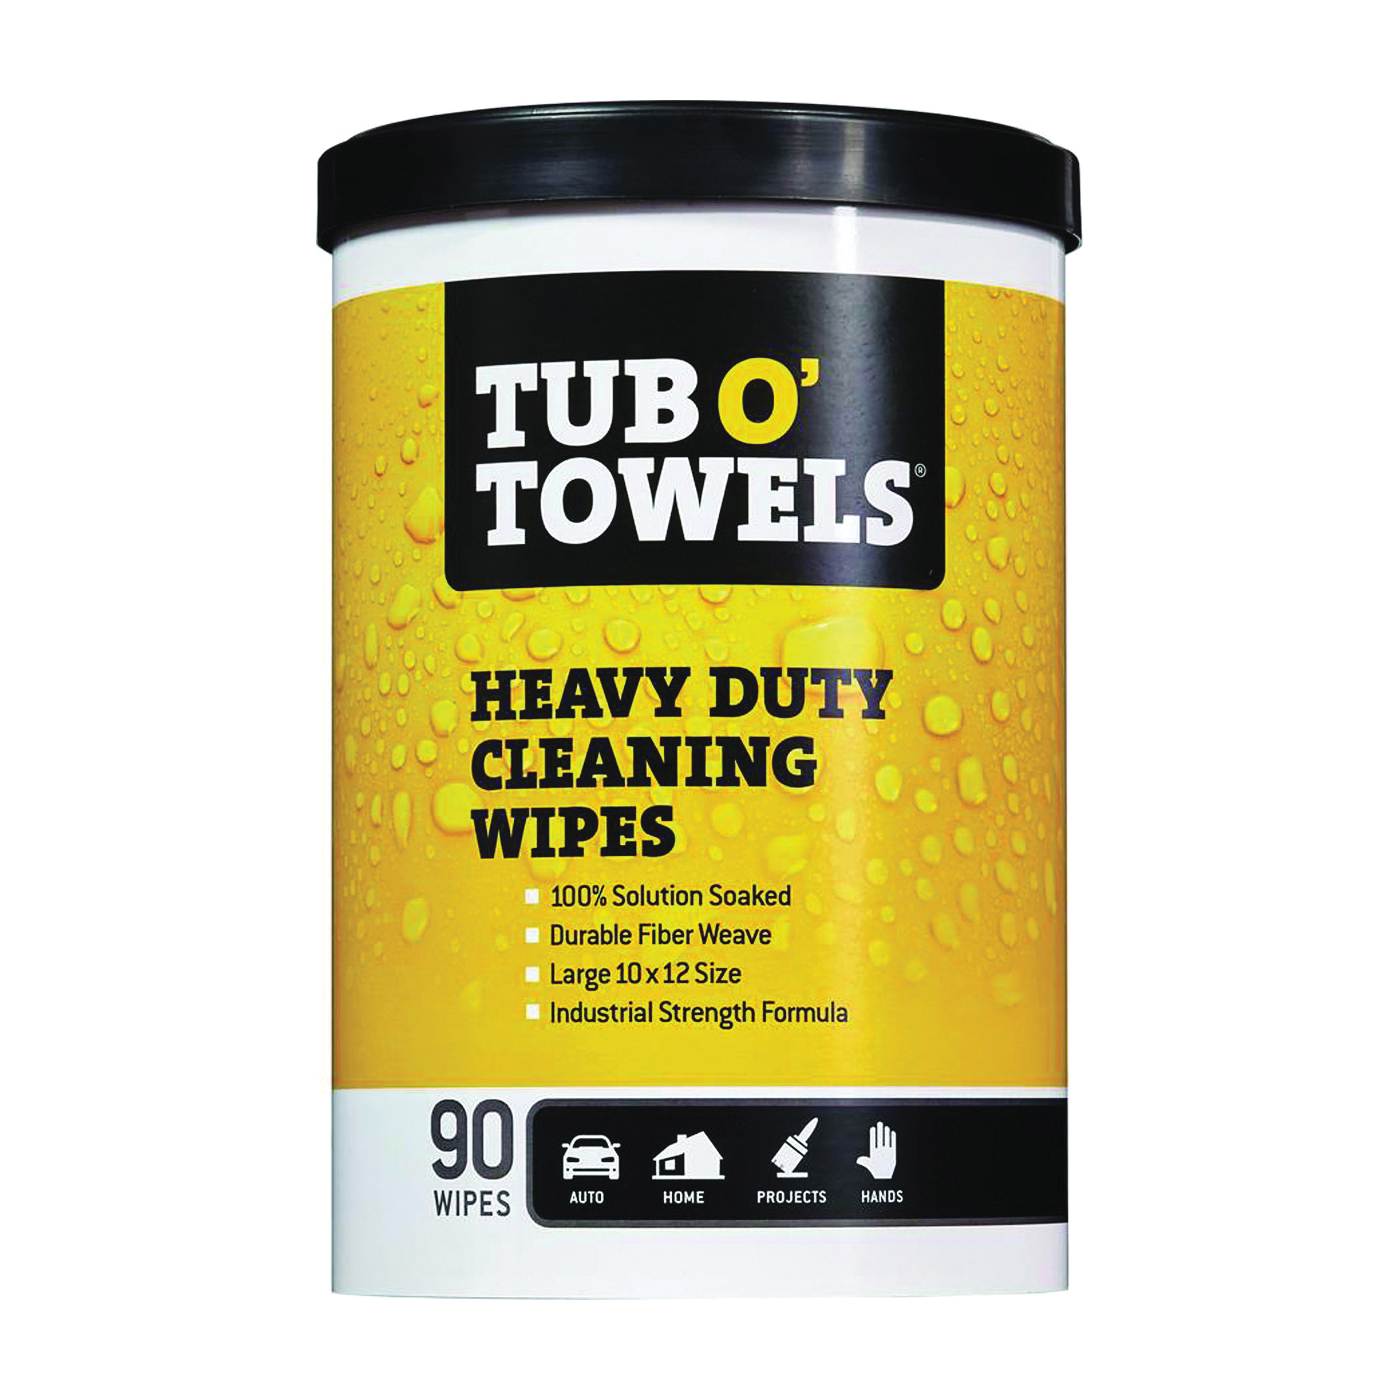 Picture of Tub O'Towels TW90 Cleaning Wipes, 12 in L, 10 in W, Light Citrus, 90